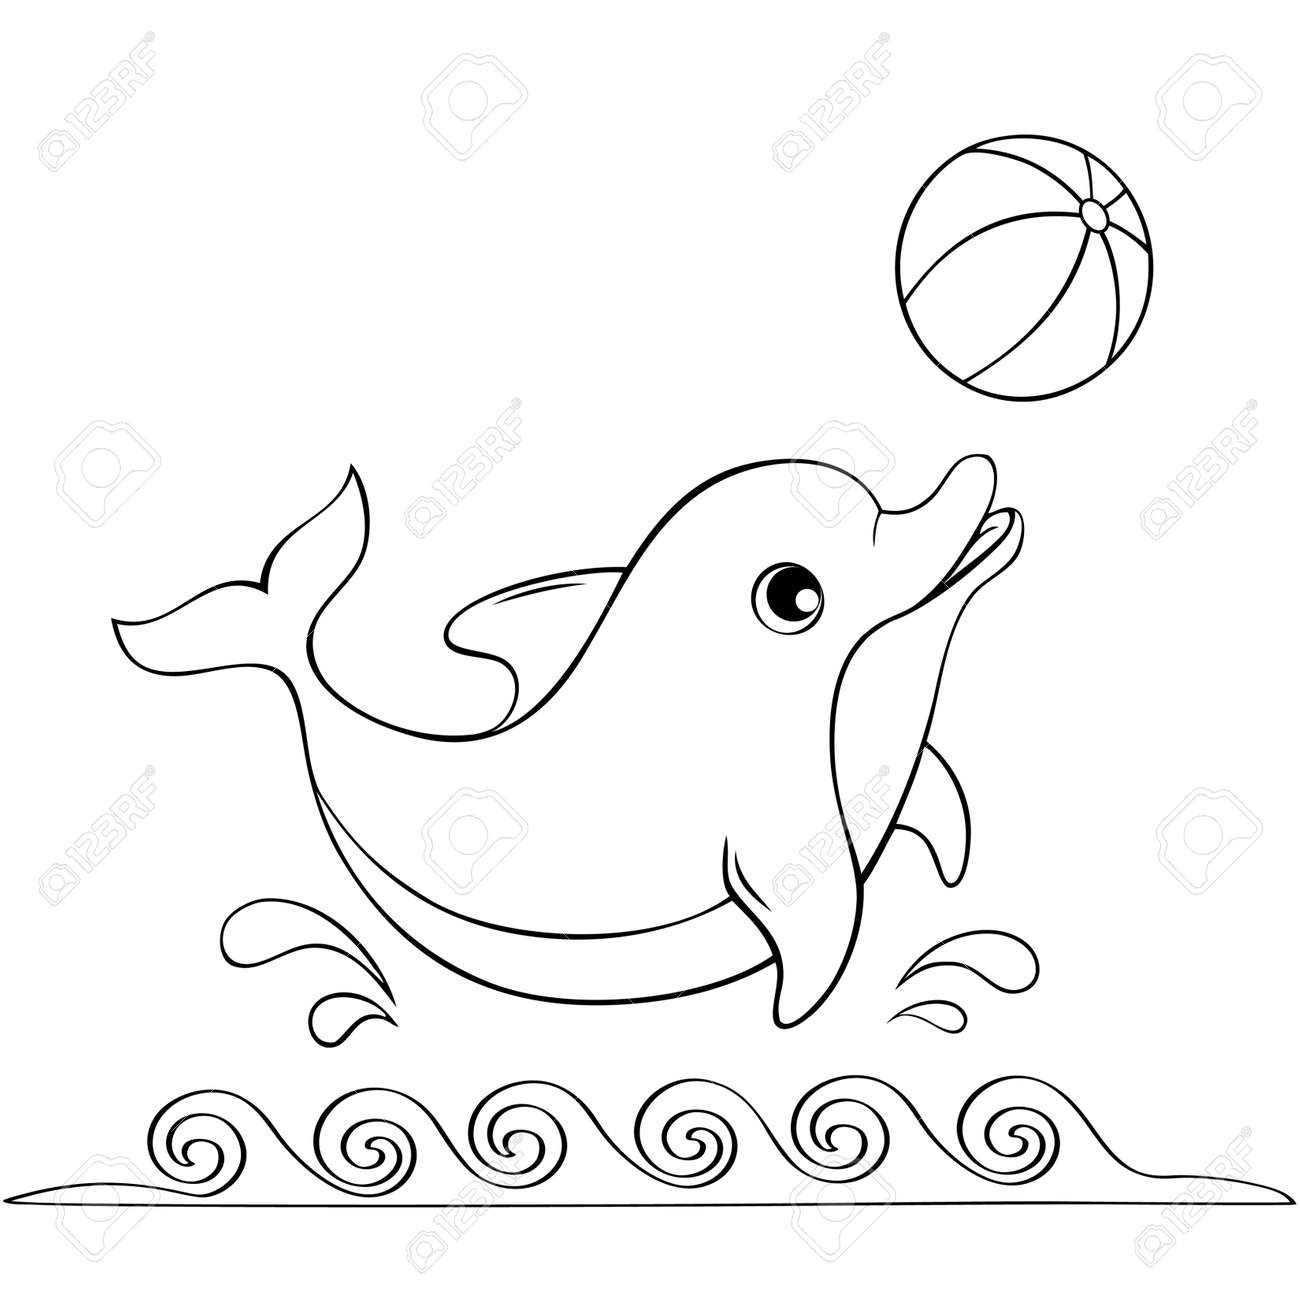 cute dolphin playing with a ball black and white illustration